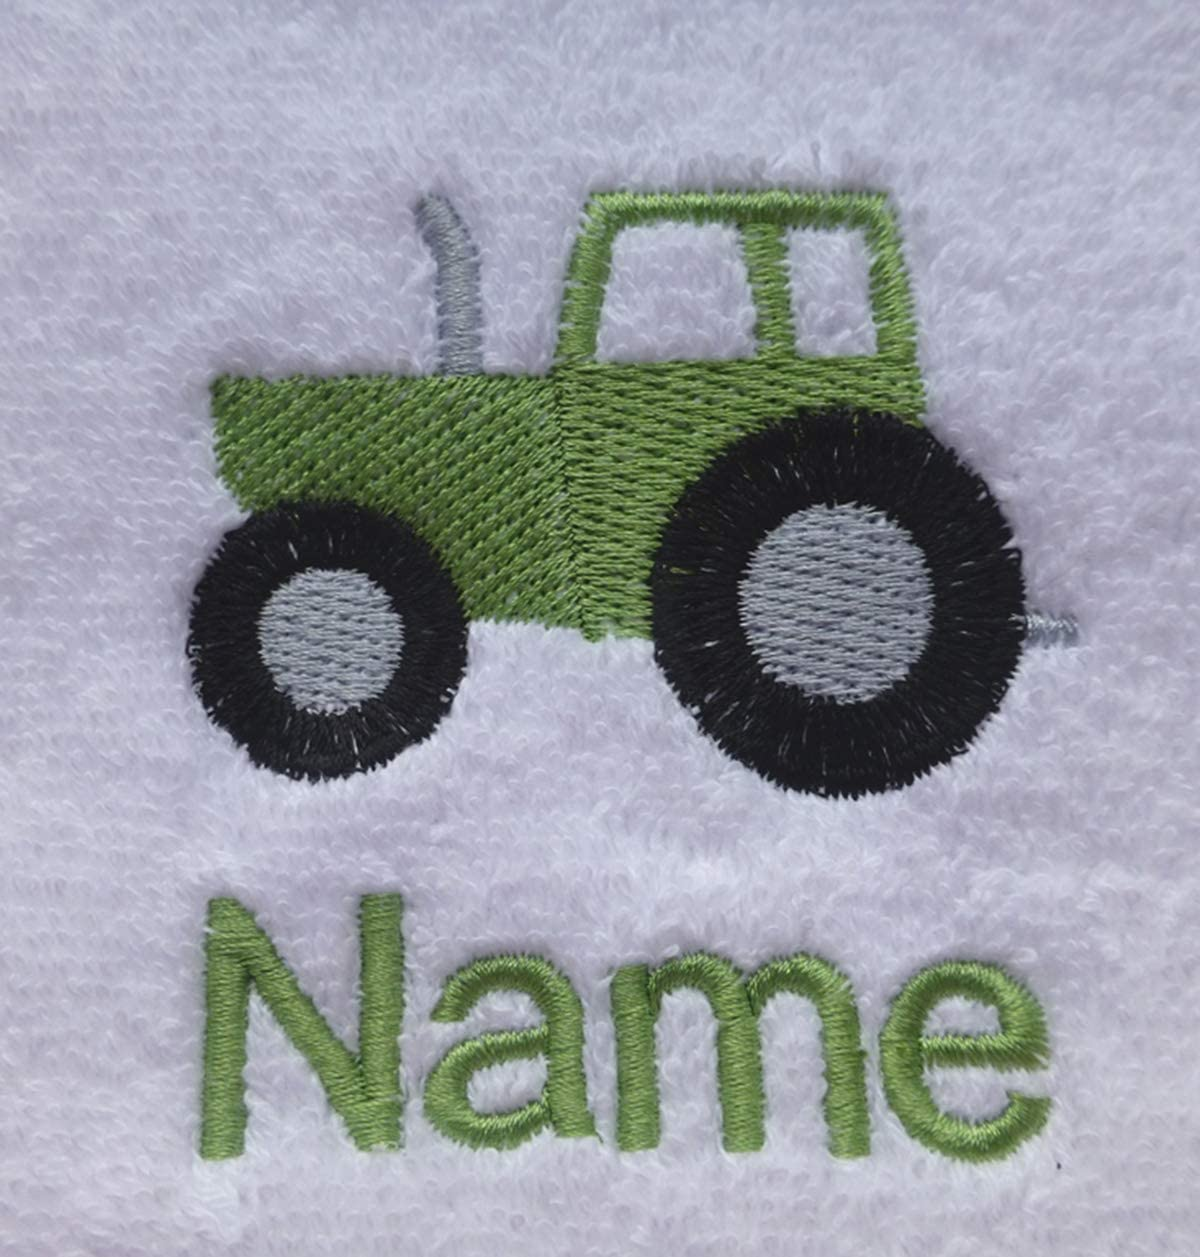 EFY White Baby Hooded Bath Robe or White Hooded Towel with a TRACTOR Logo and Name of your choice. Hooded Towel 0-5 years